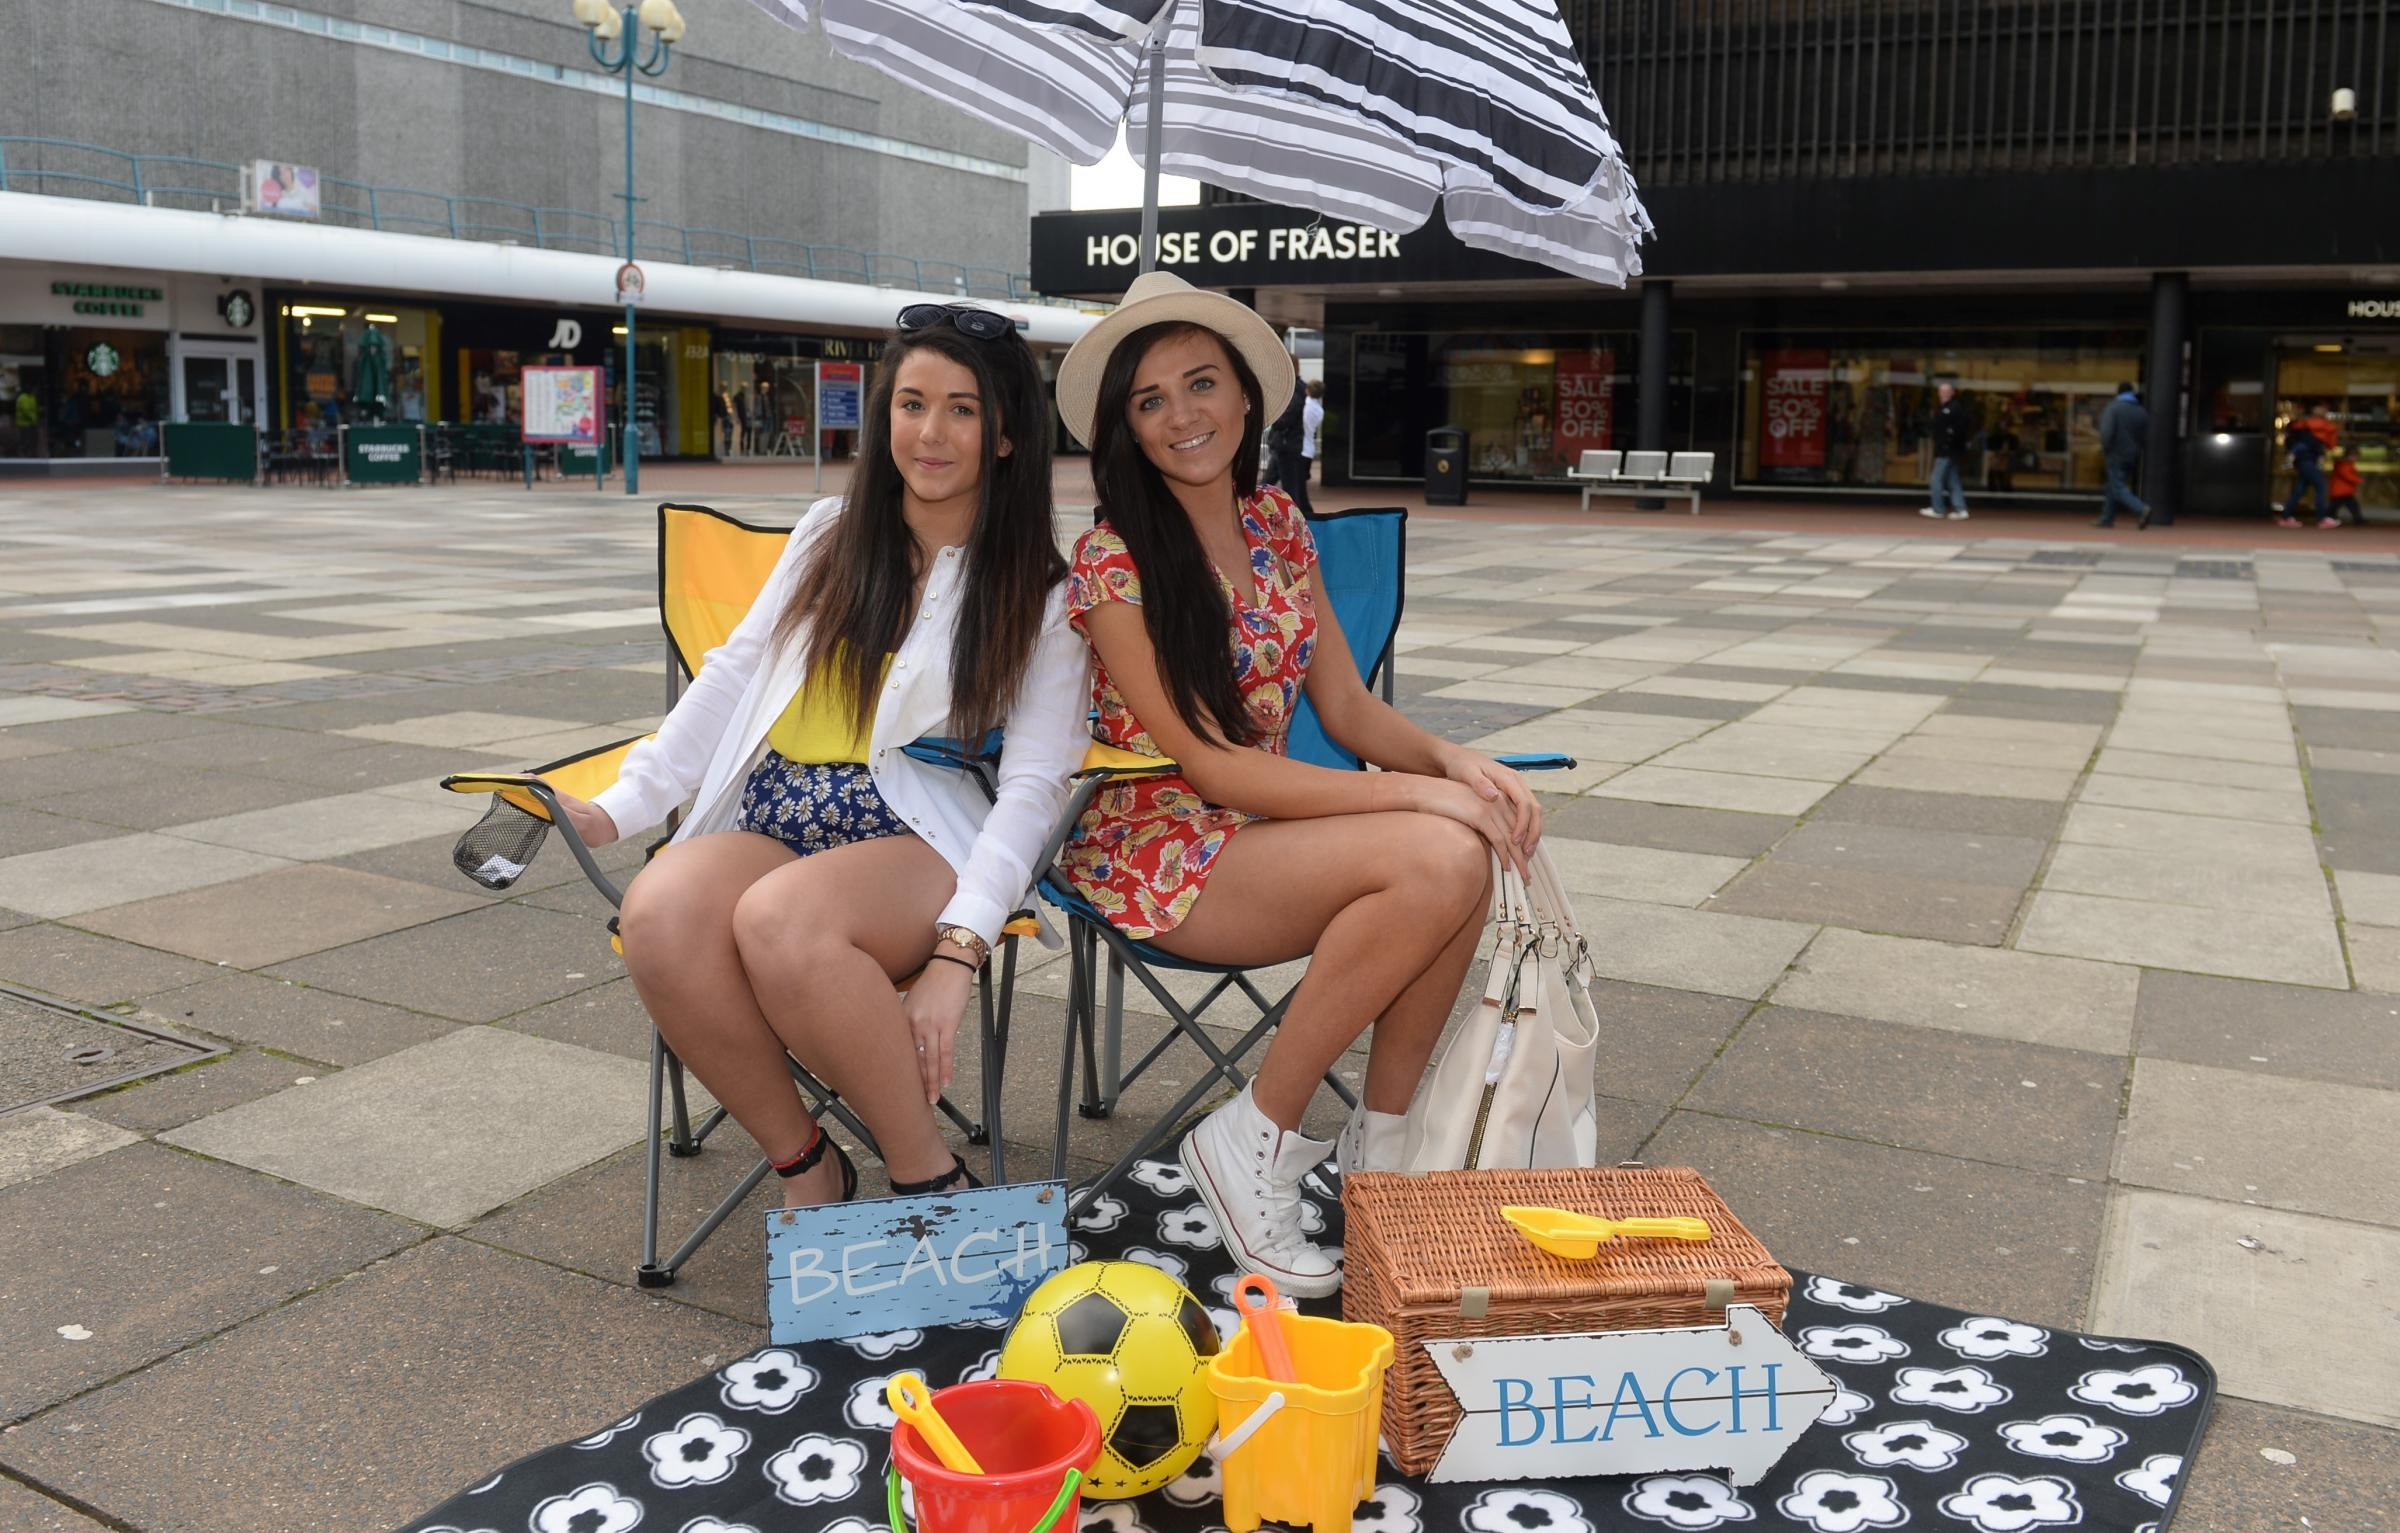 Urban beach set for Cwmbran